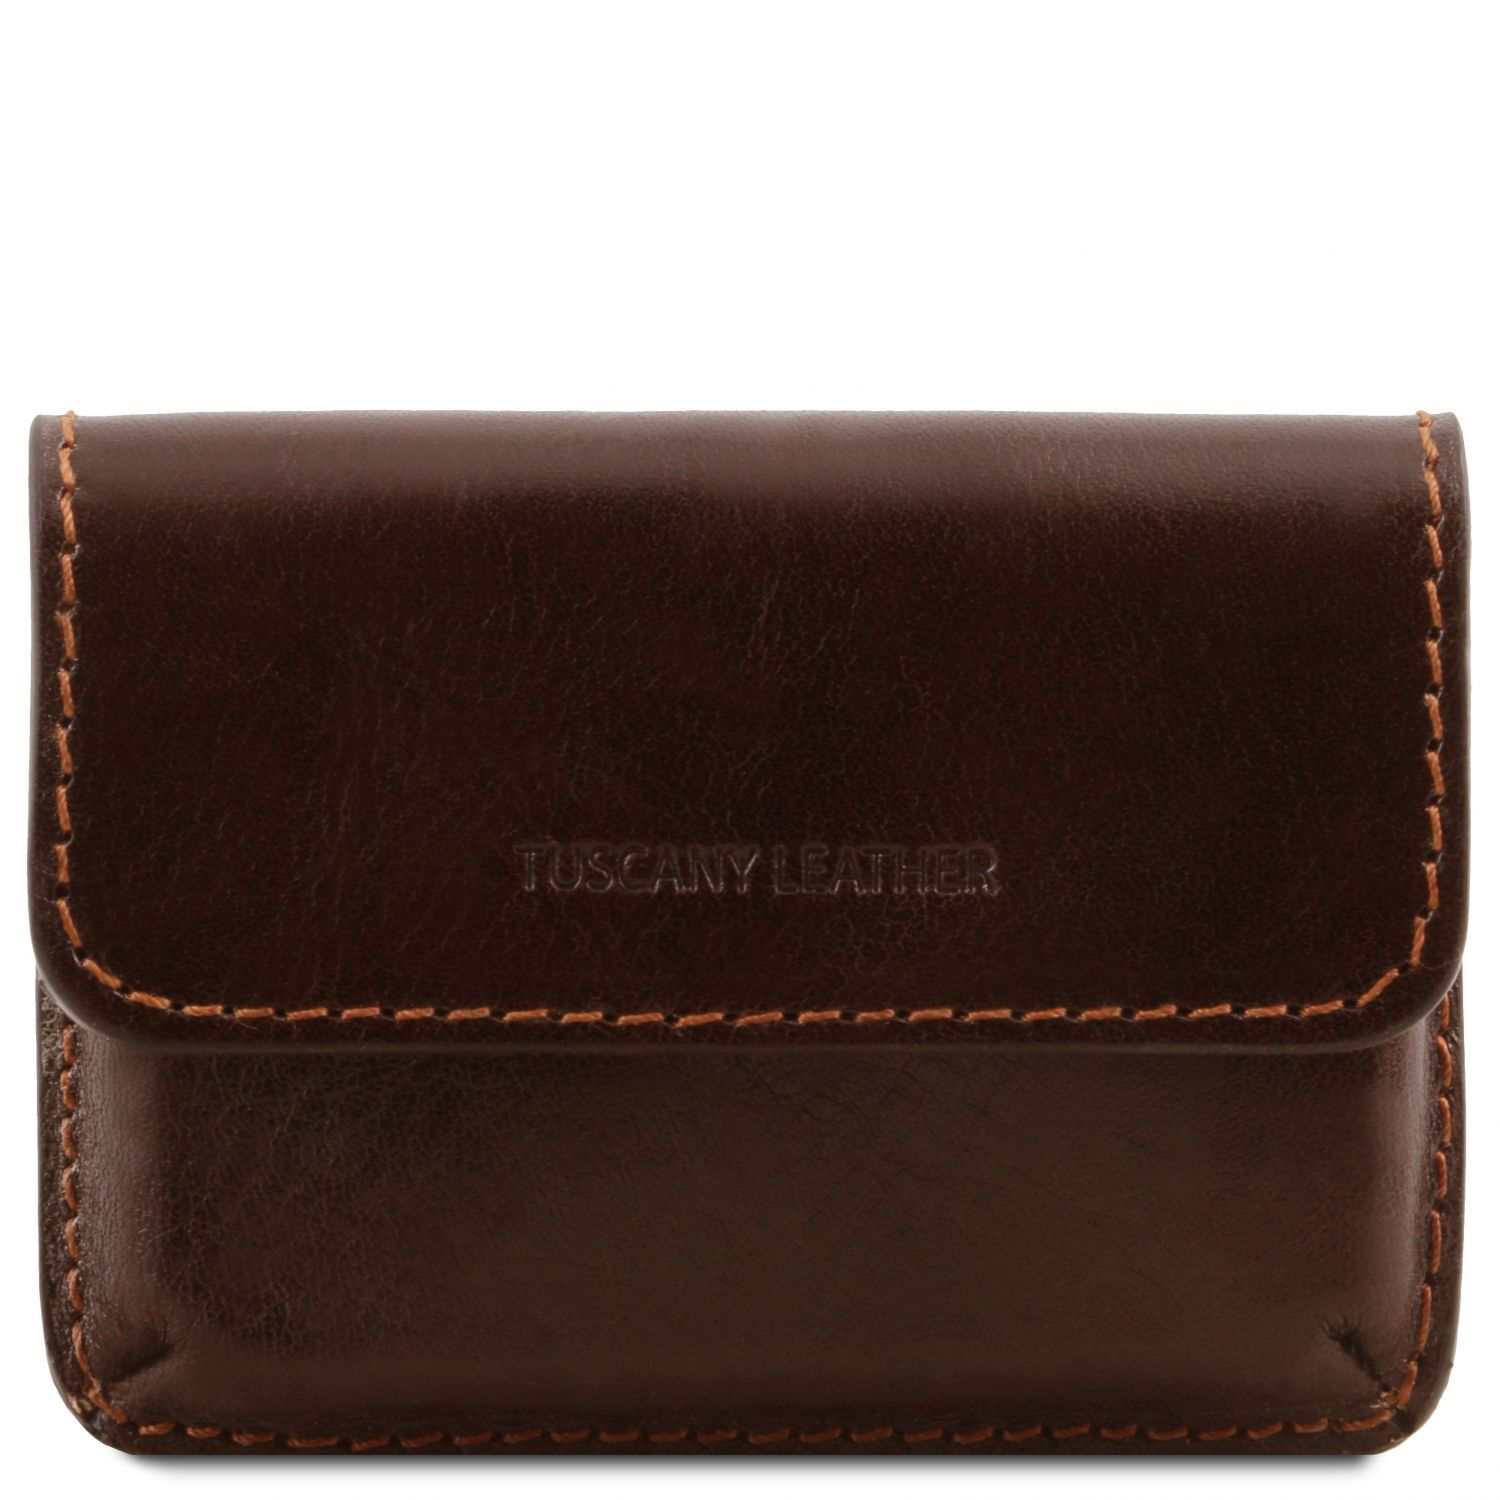 Exclusive leather business cards holder (TL141378) - Men leather accessories | DILUSSOBAGS